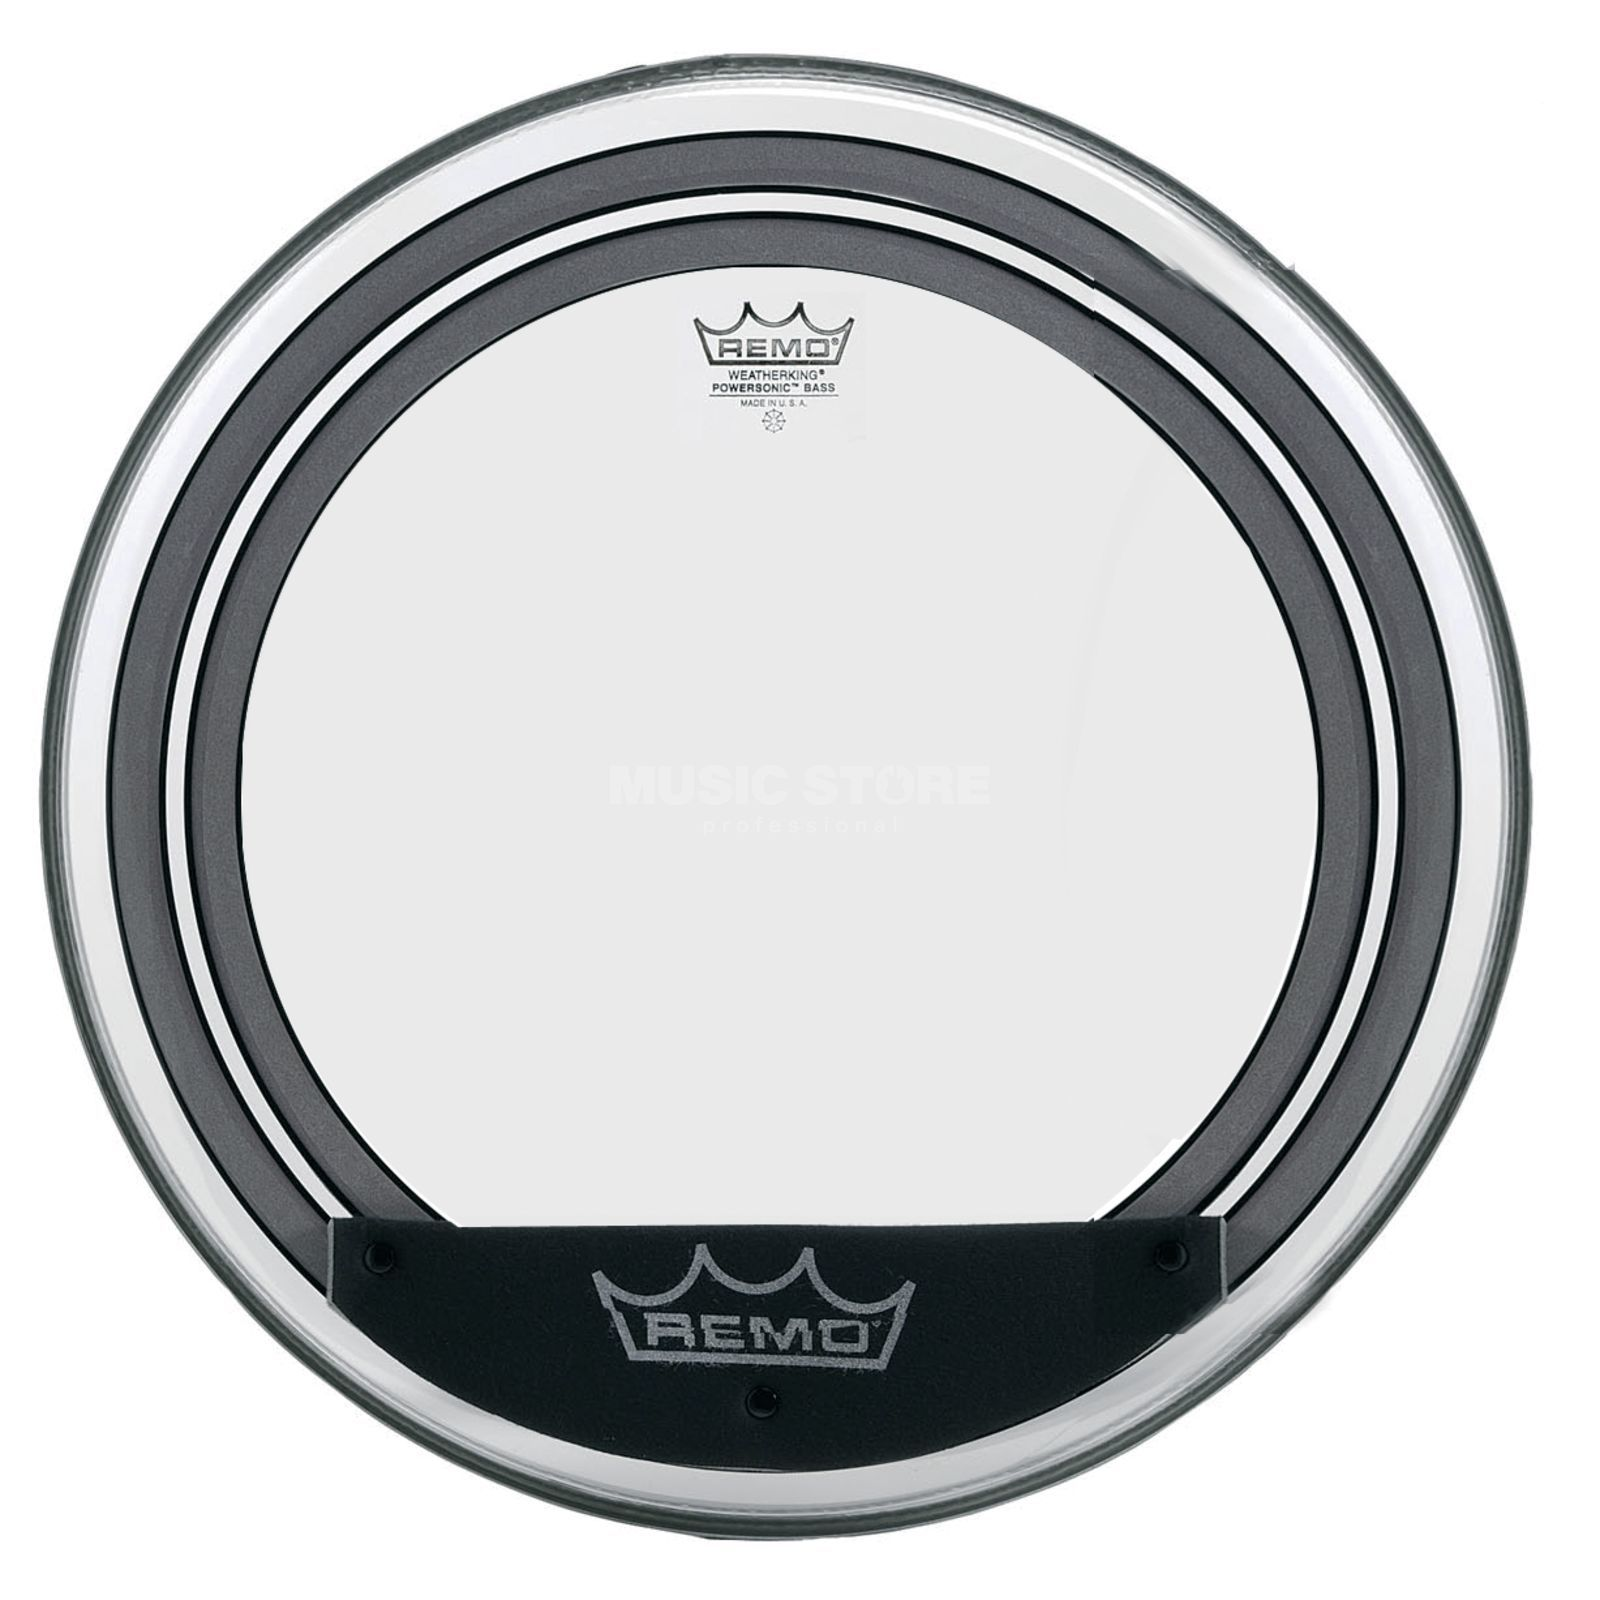 "Remo Powersonic 18"", clear, BassDrum Batter Imagen del producto"